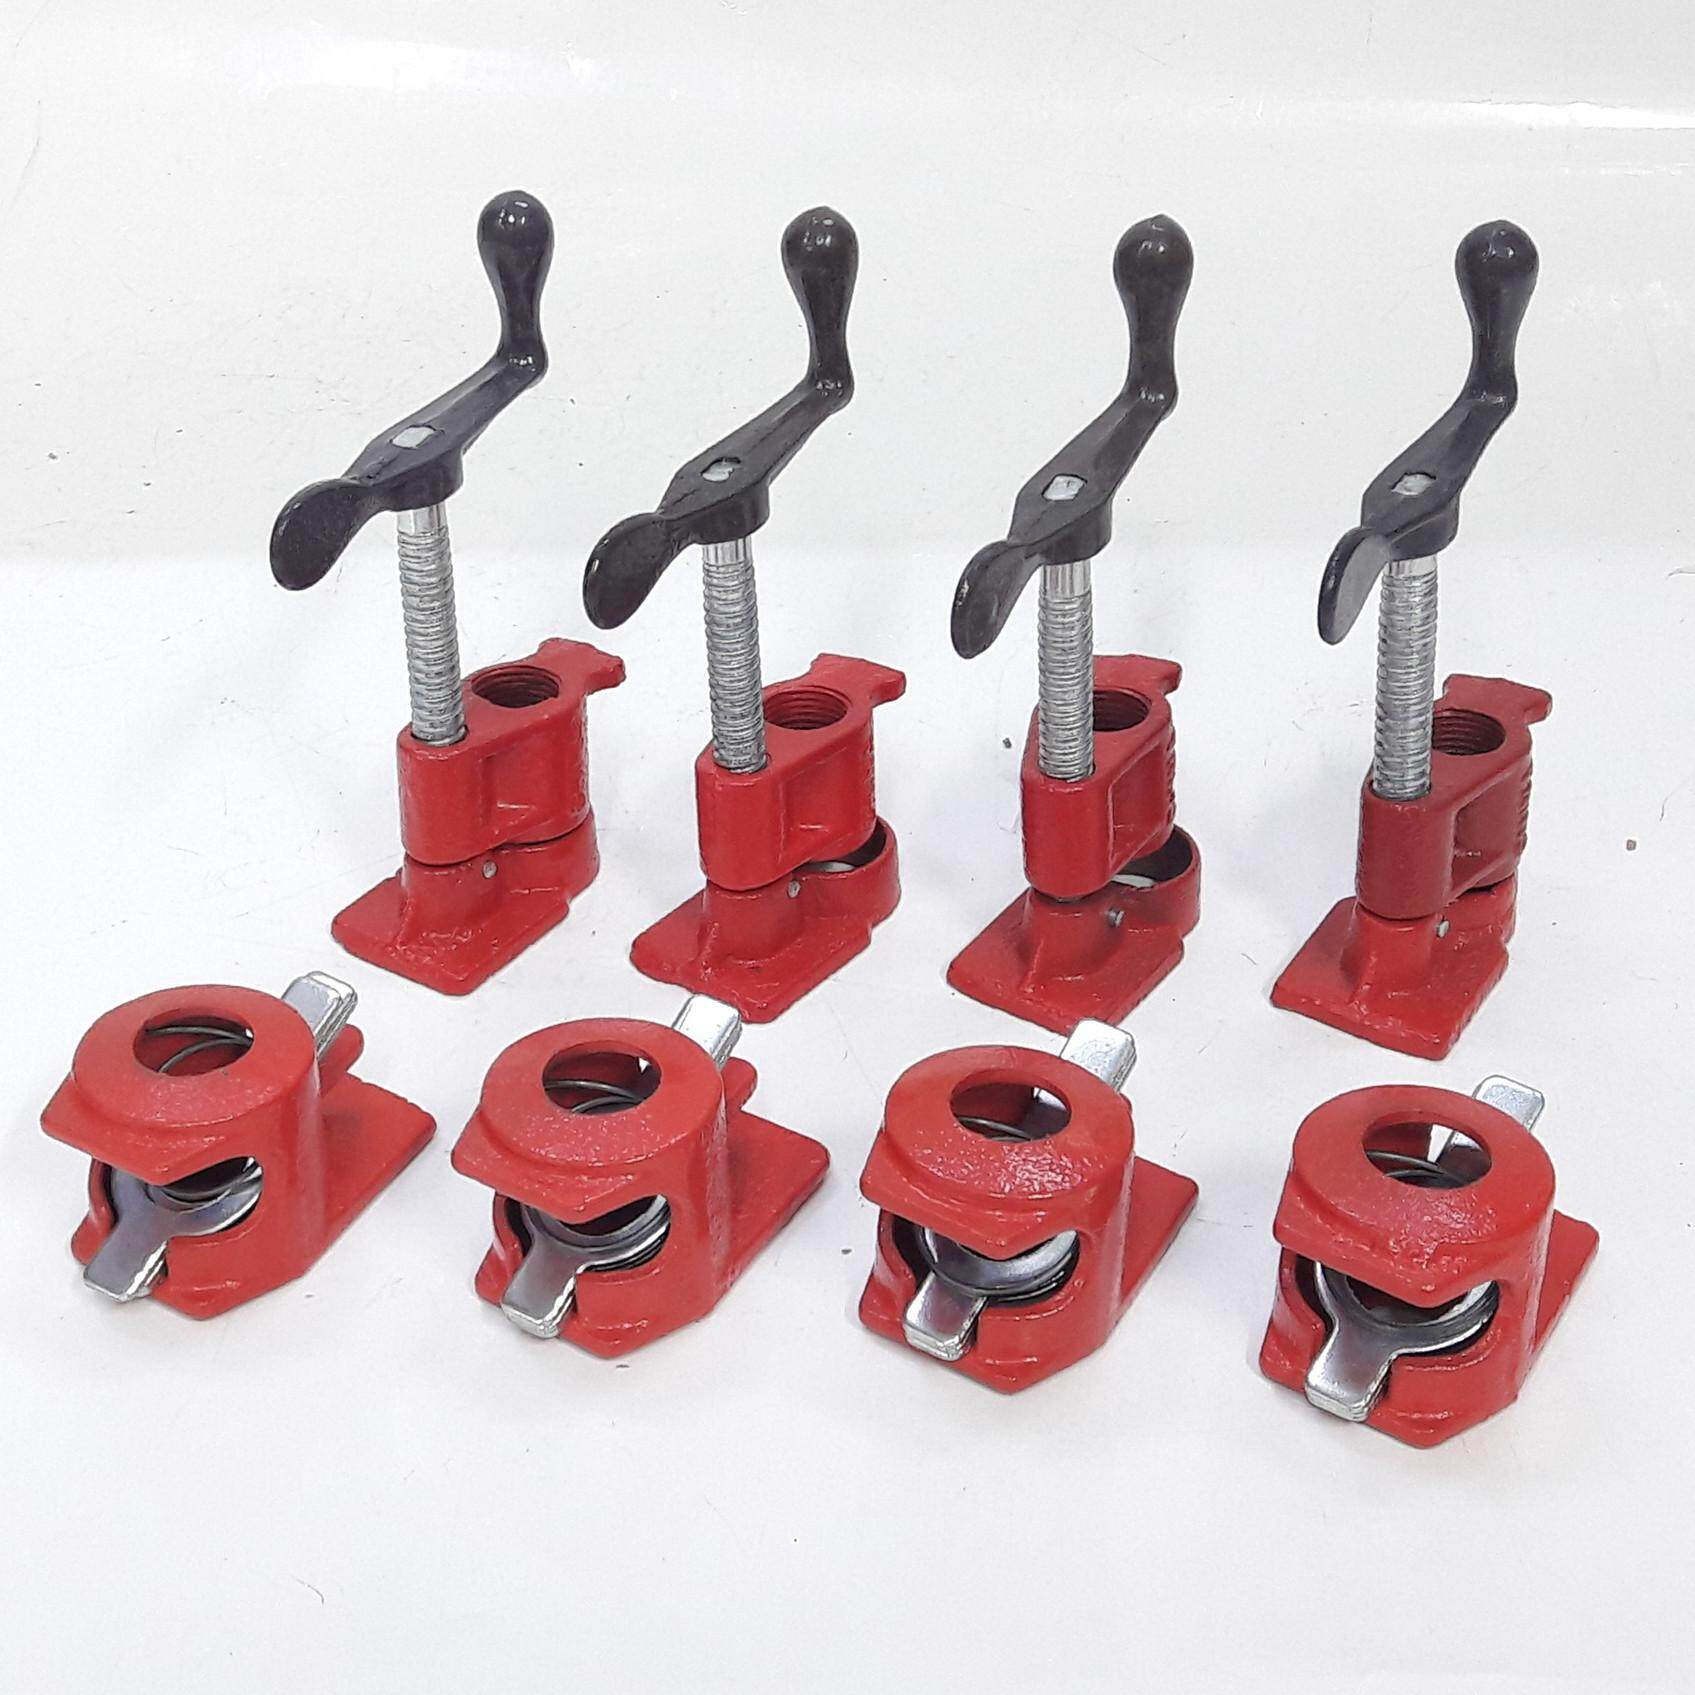 millionhardware - (4pcs) 3/4 inch Heavy Duty Pipe Clamp Woodworking Wood Gluing Pipe Clamps Tool